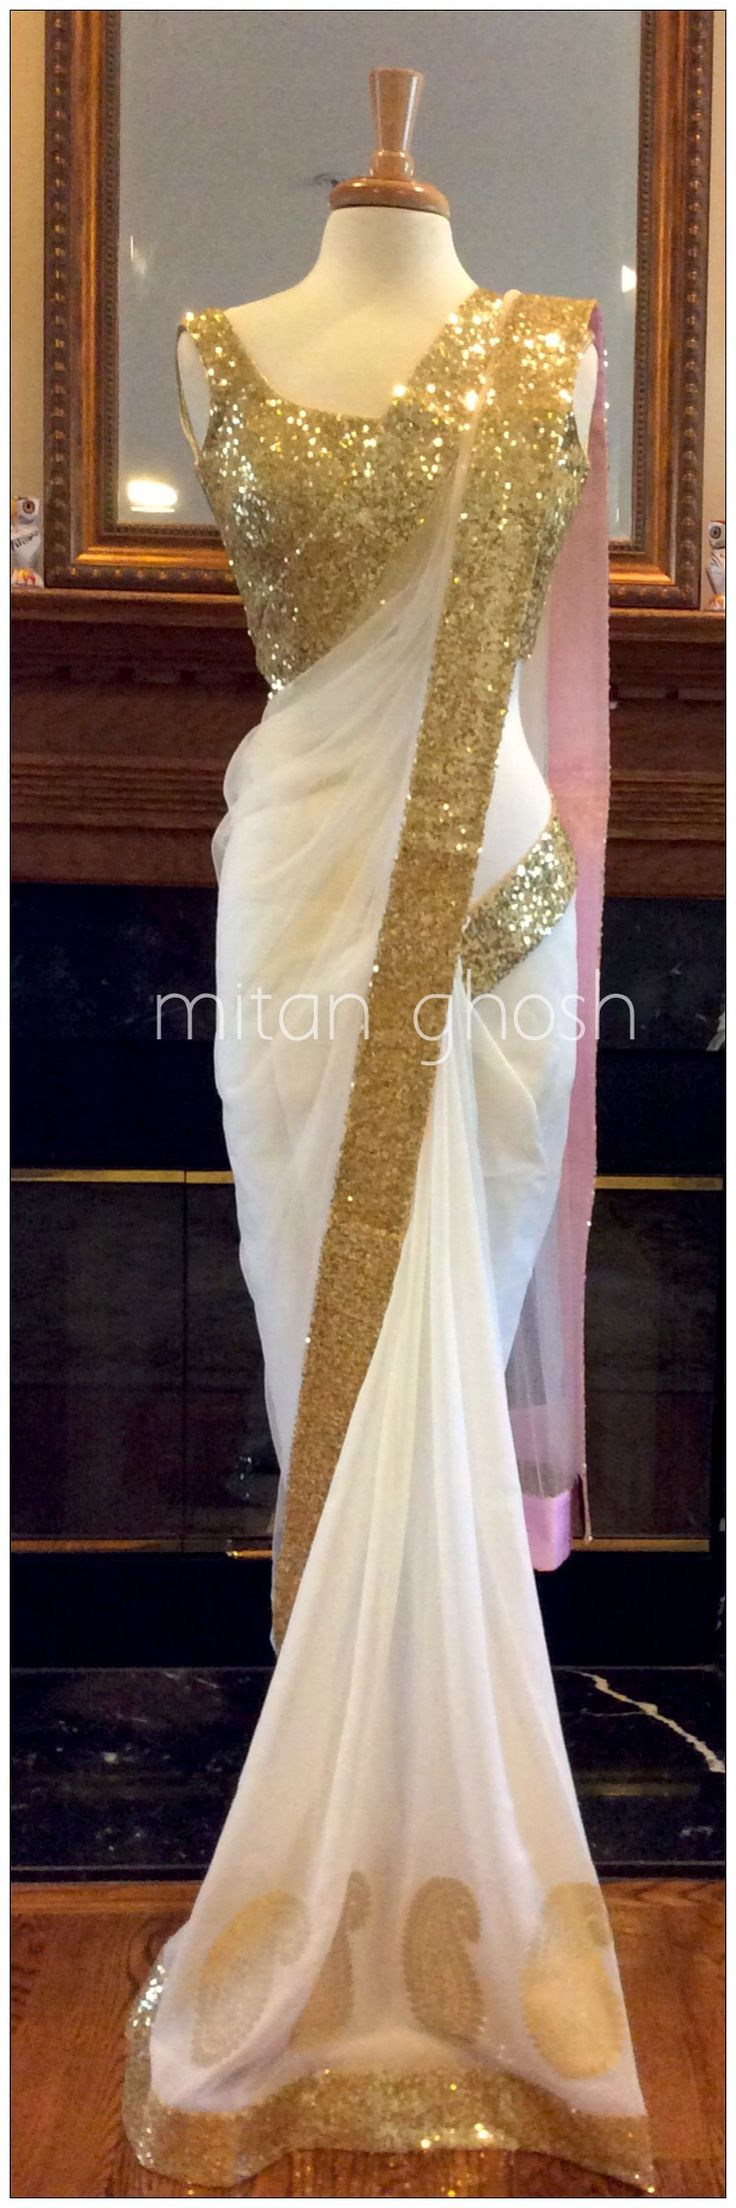 beautiful sari